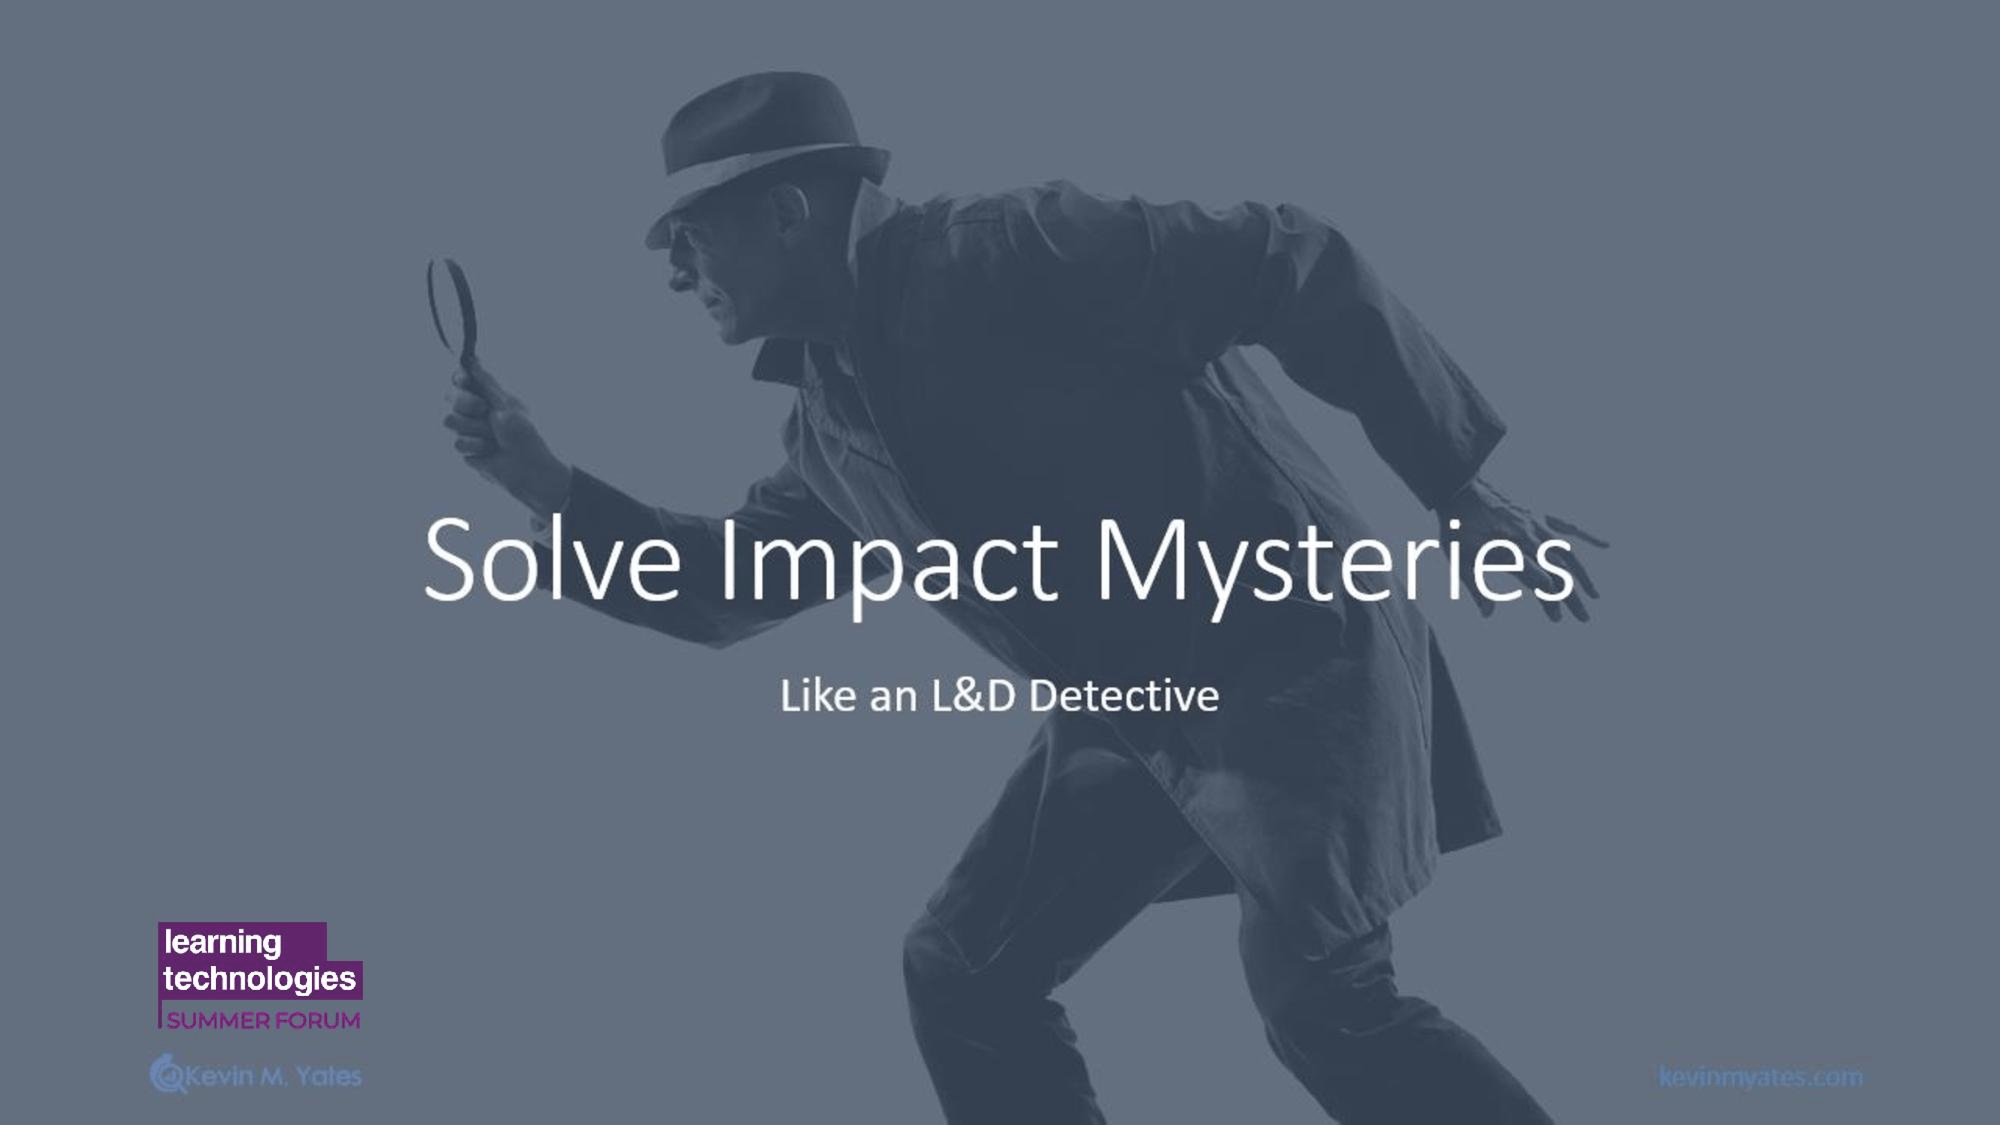 Solve impact mysteries like an L&D detective